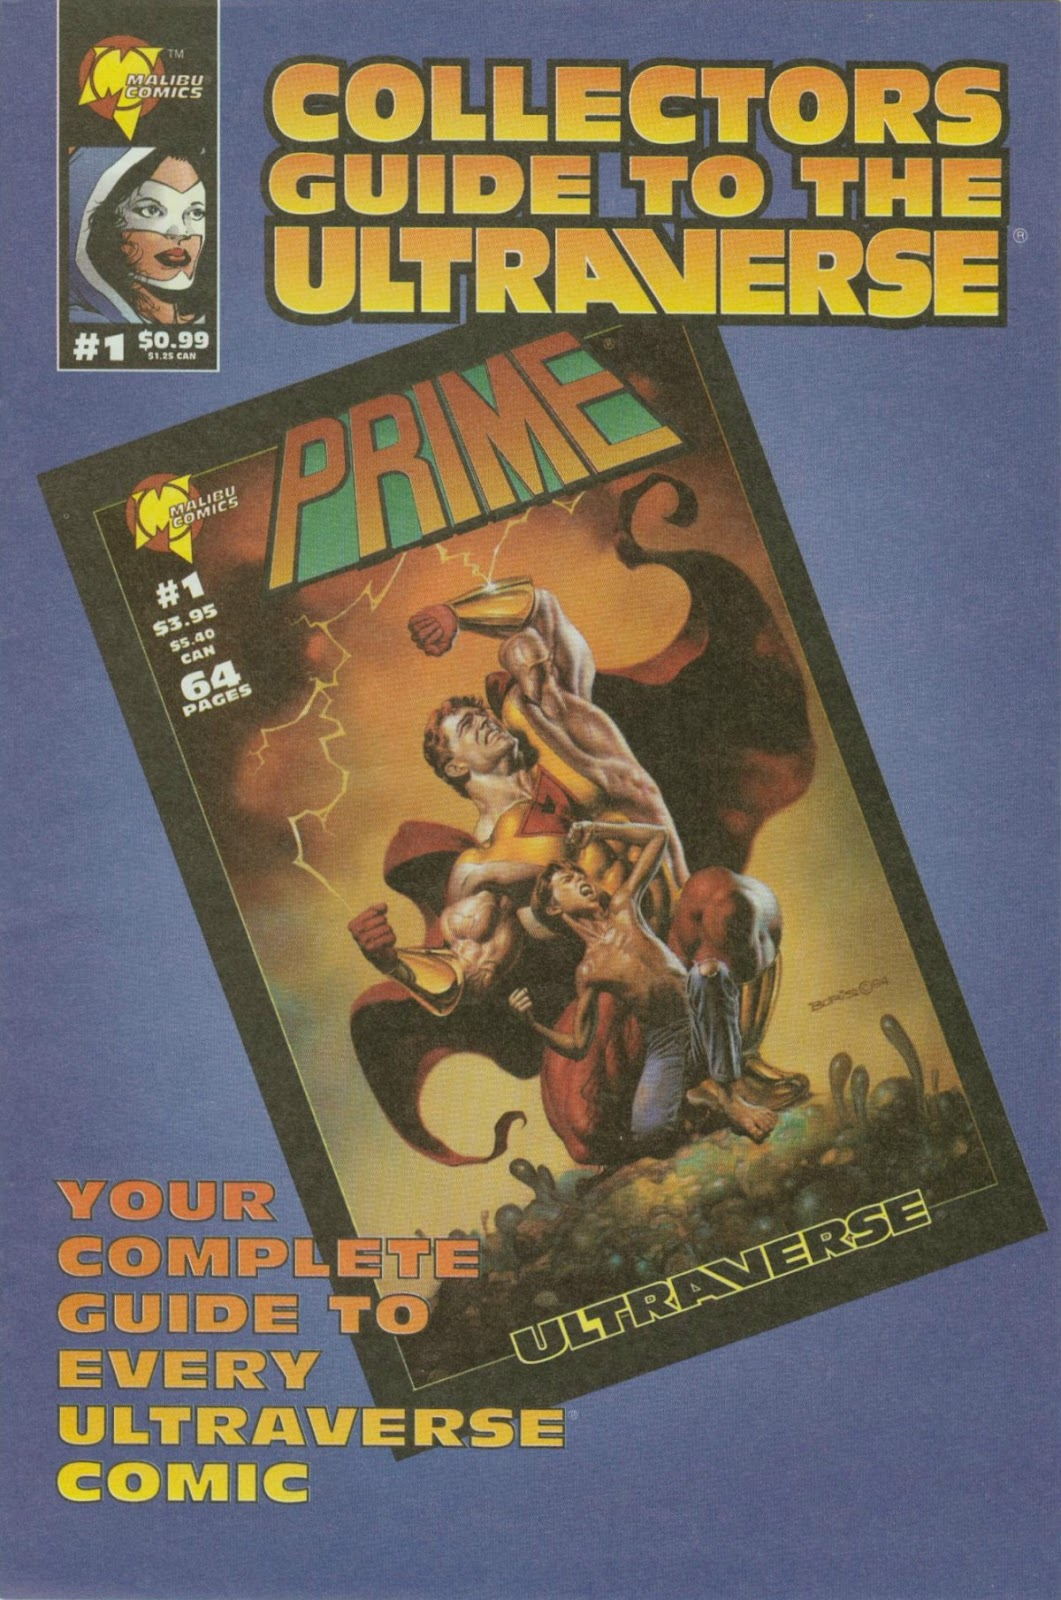 Collectors Guide to the Ultraverse Full Page 1